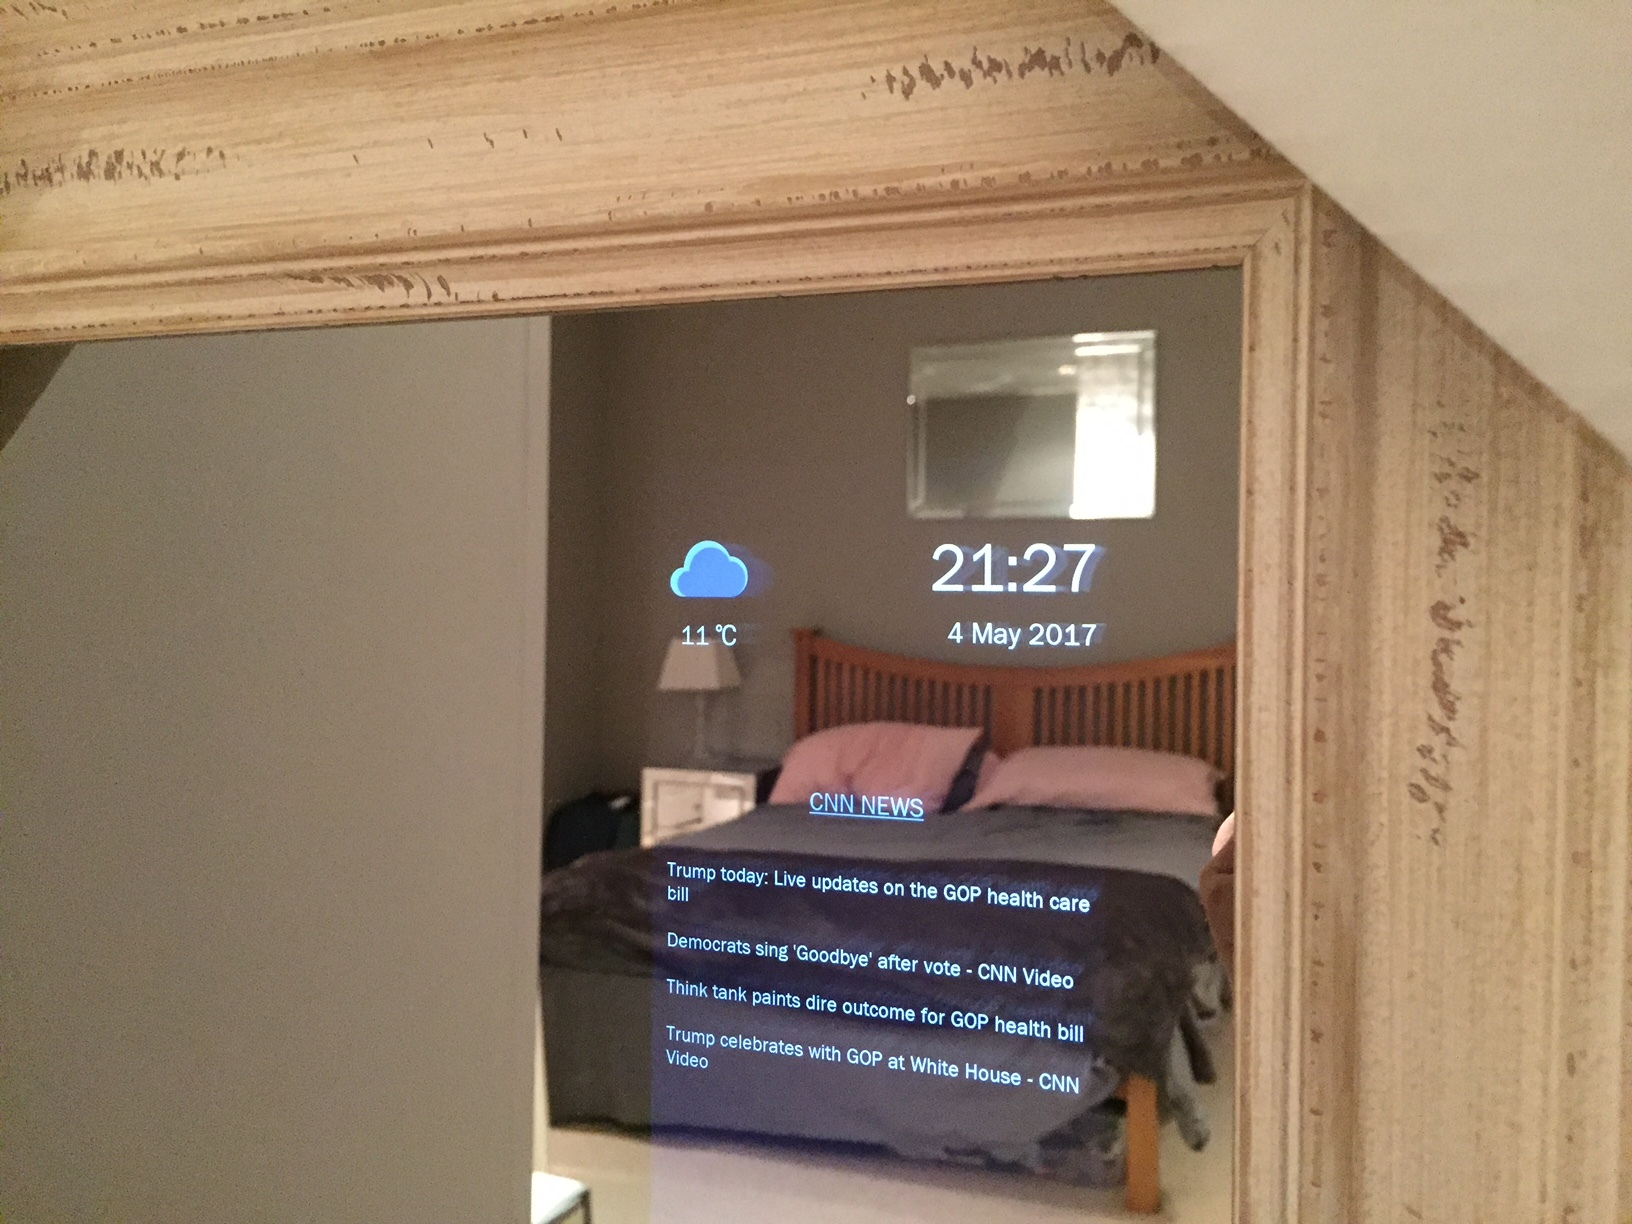 Smart Mirror Full Length Shabby Chic Frame